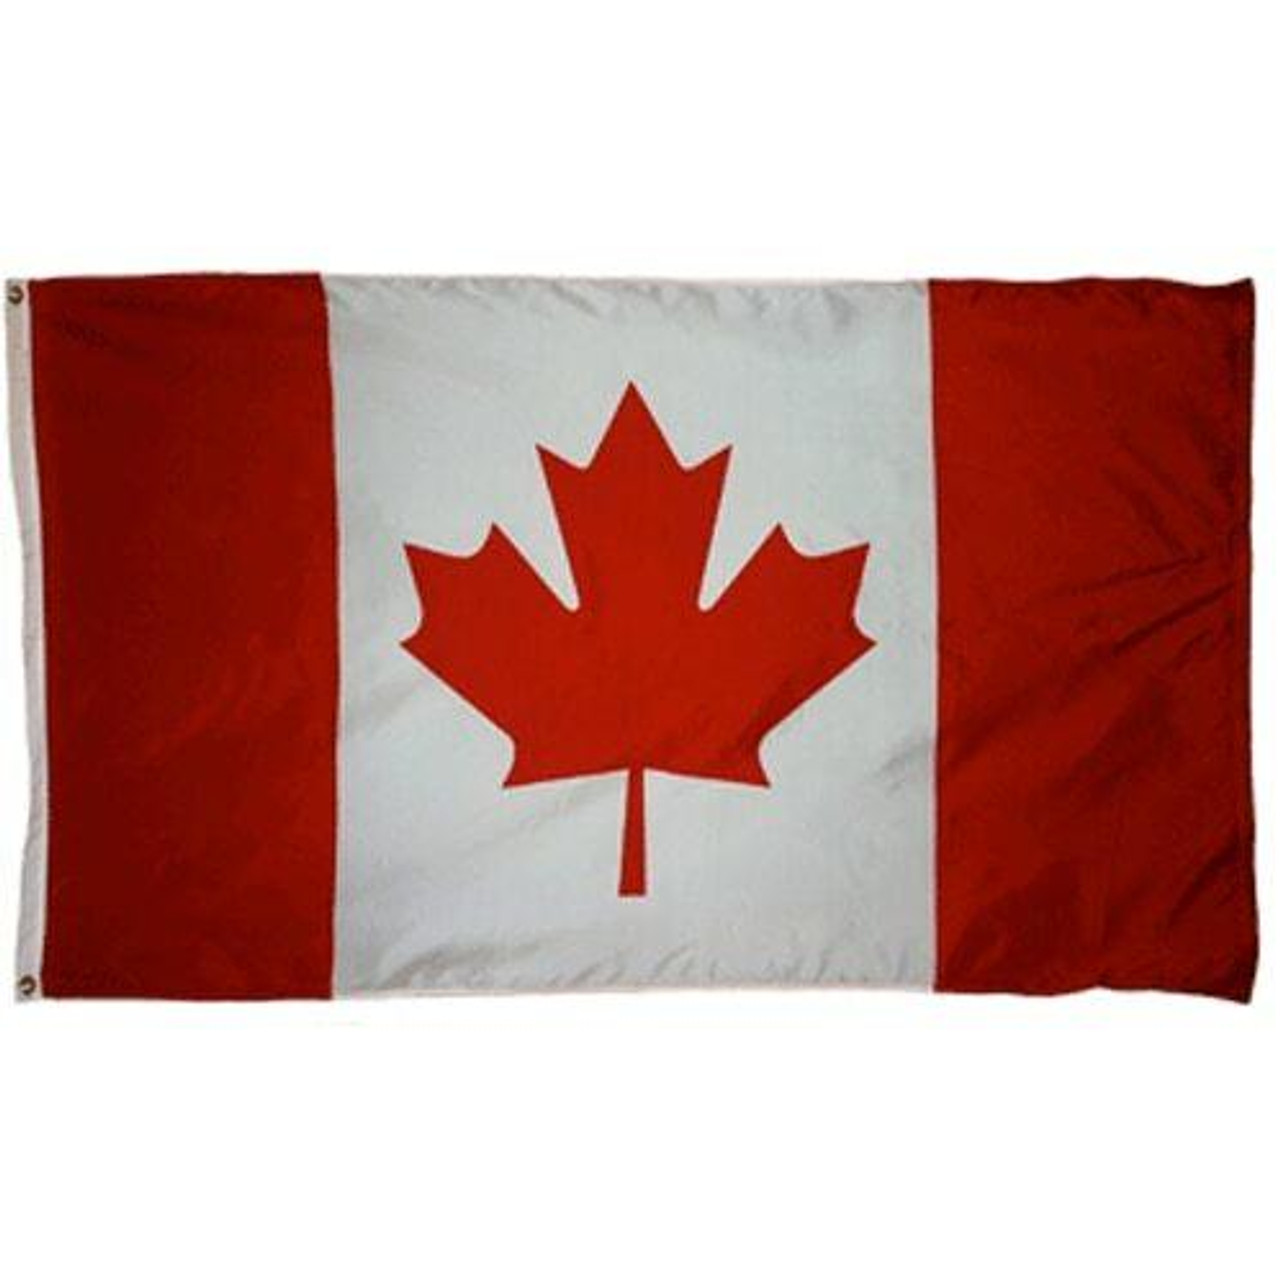 The flag of Canada features a background with a large white field with red stripes on either side with an iconic 11-pointed red maple leaf in its center. Brass grommets are on the mounting side for easy and durable hanging.